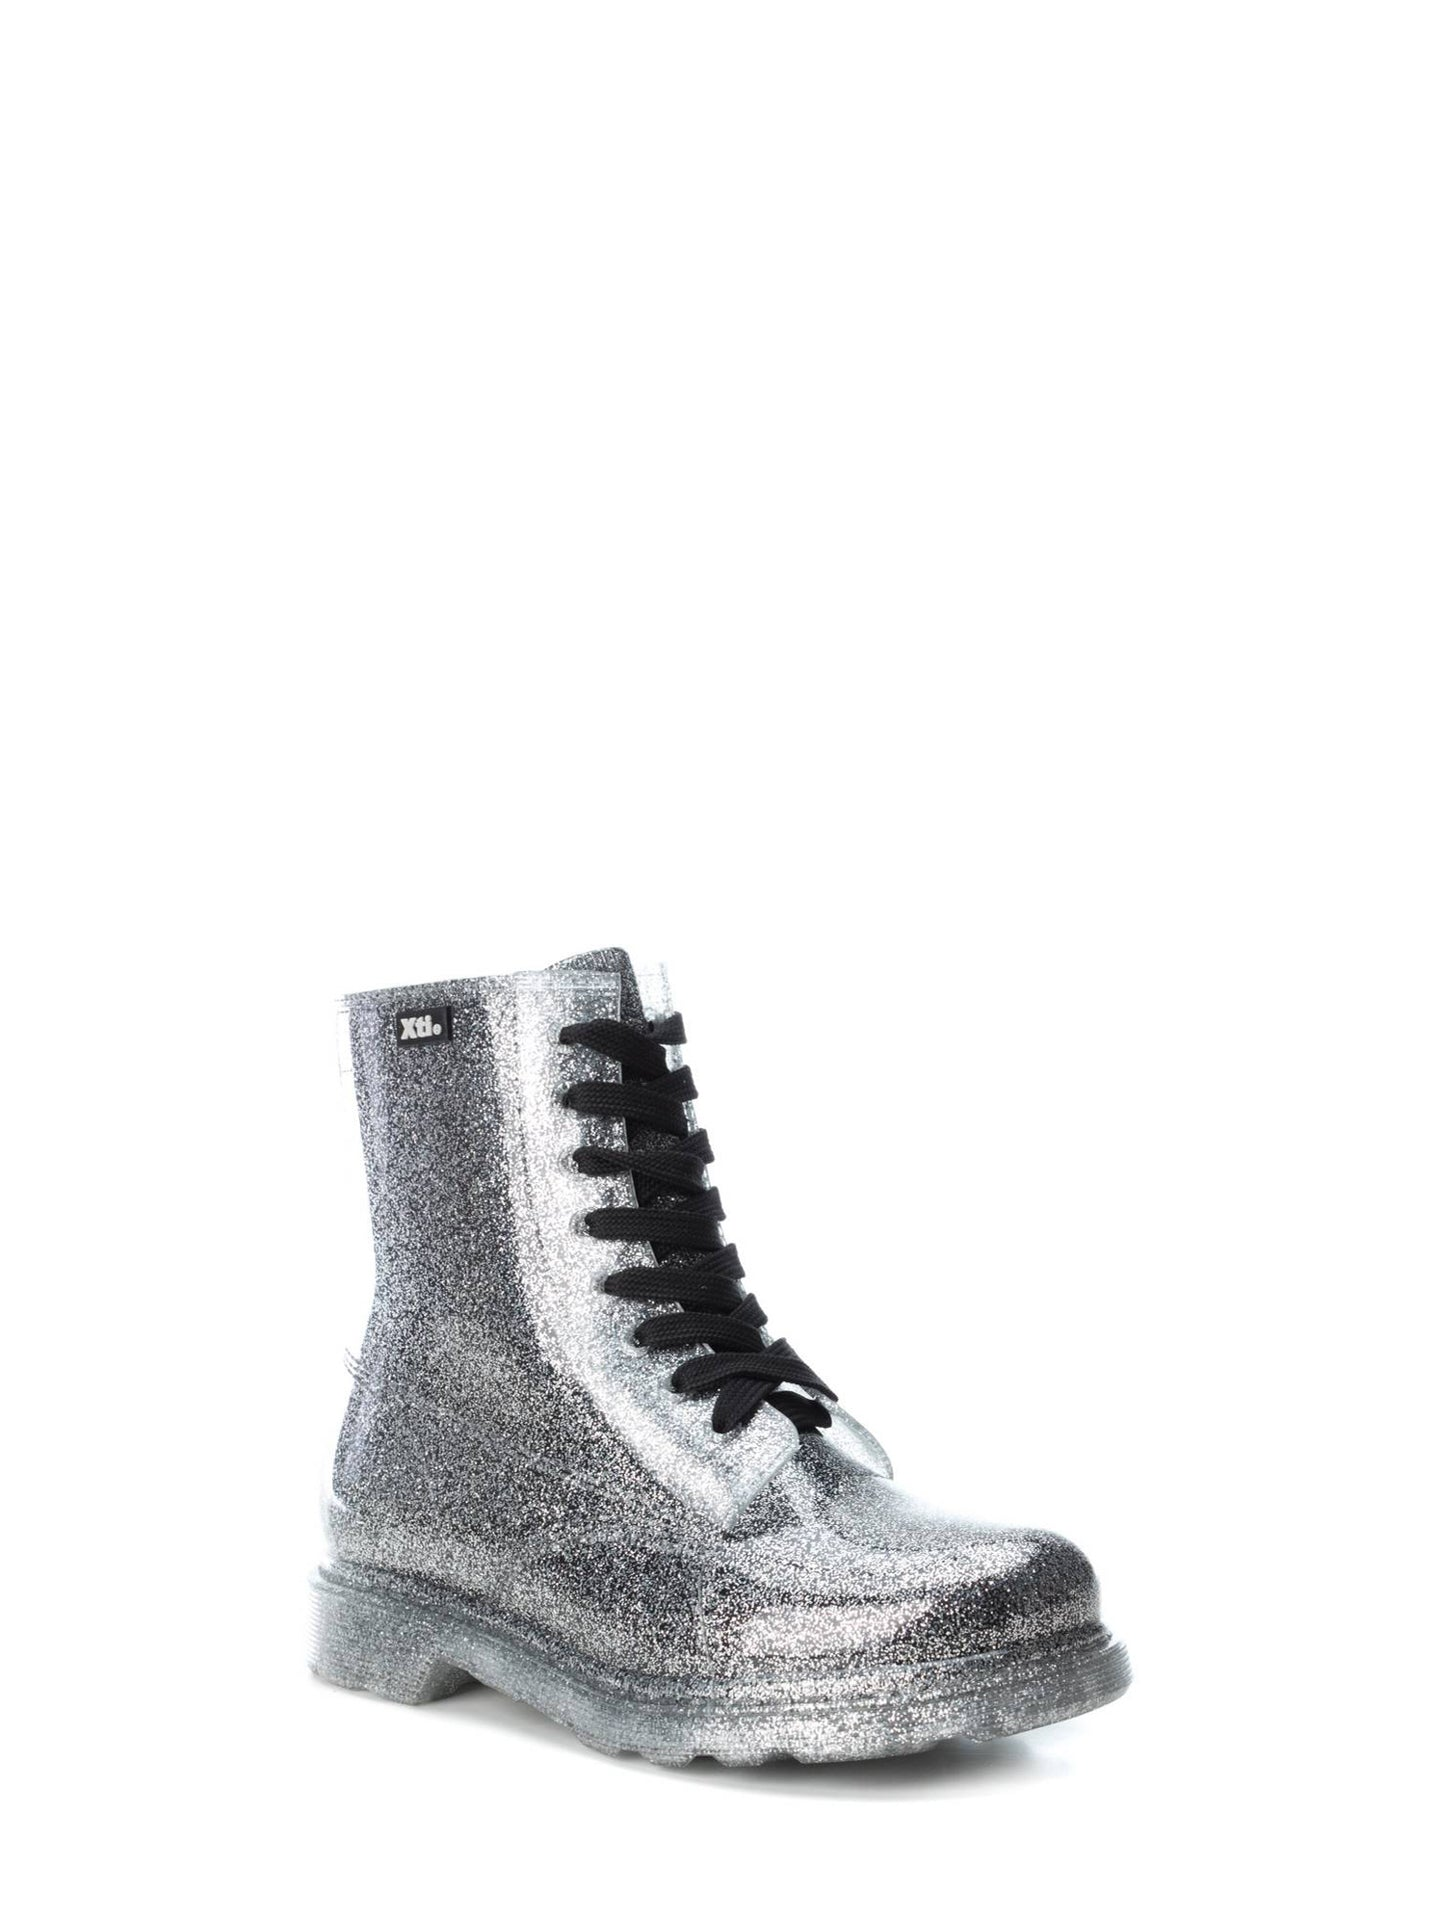 Silver Lace-up Ankle Boots - Overcube